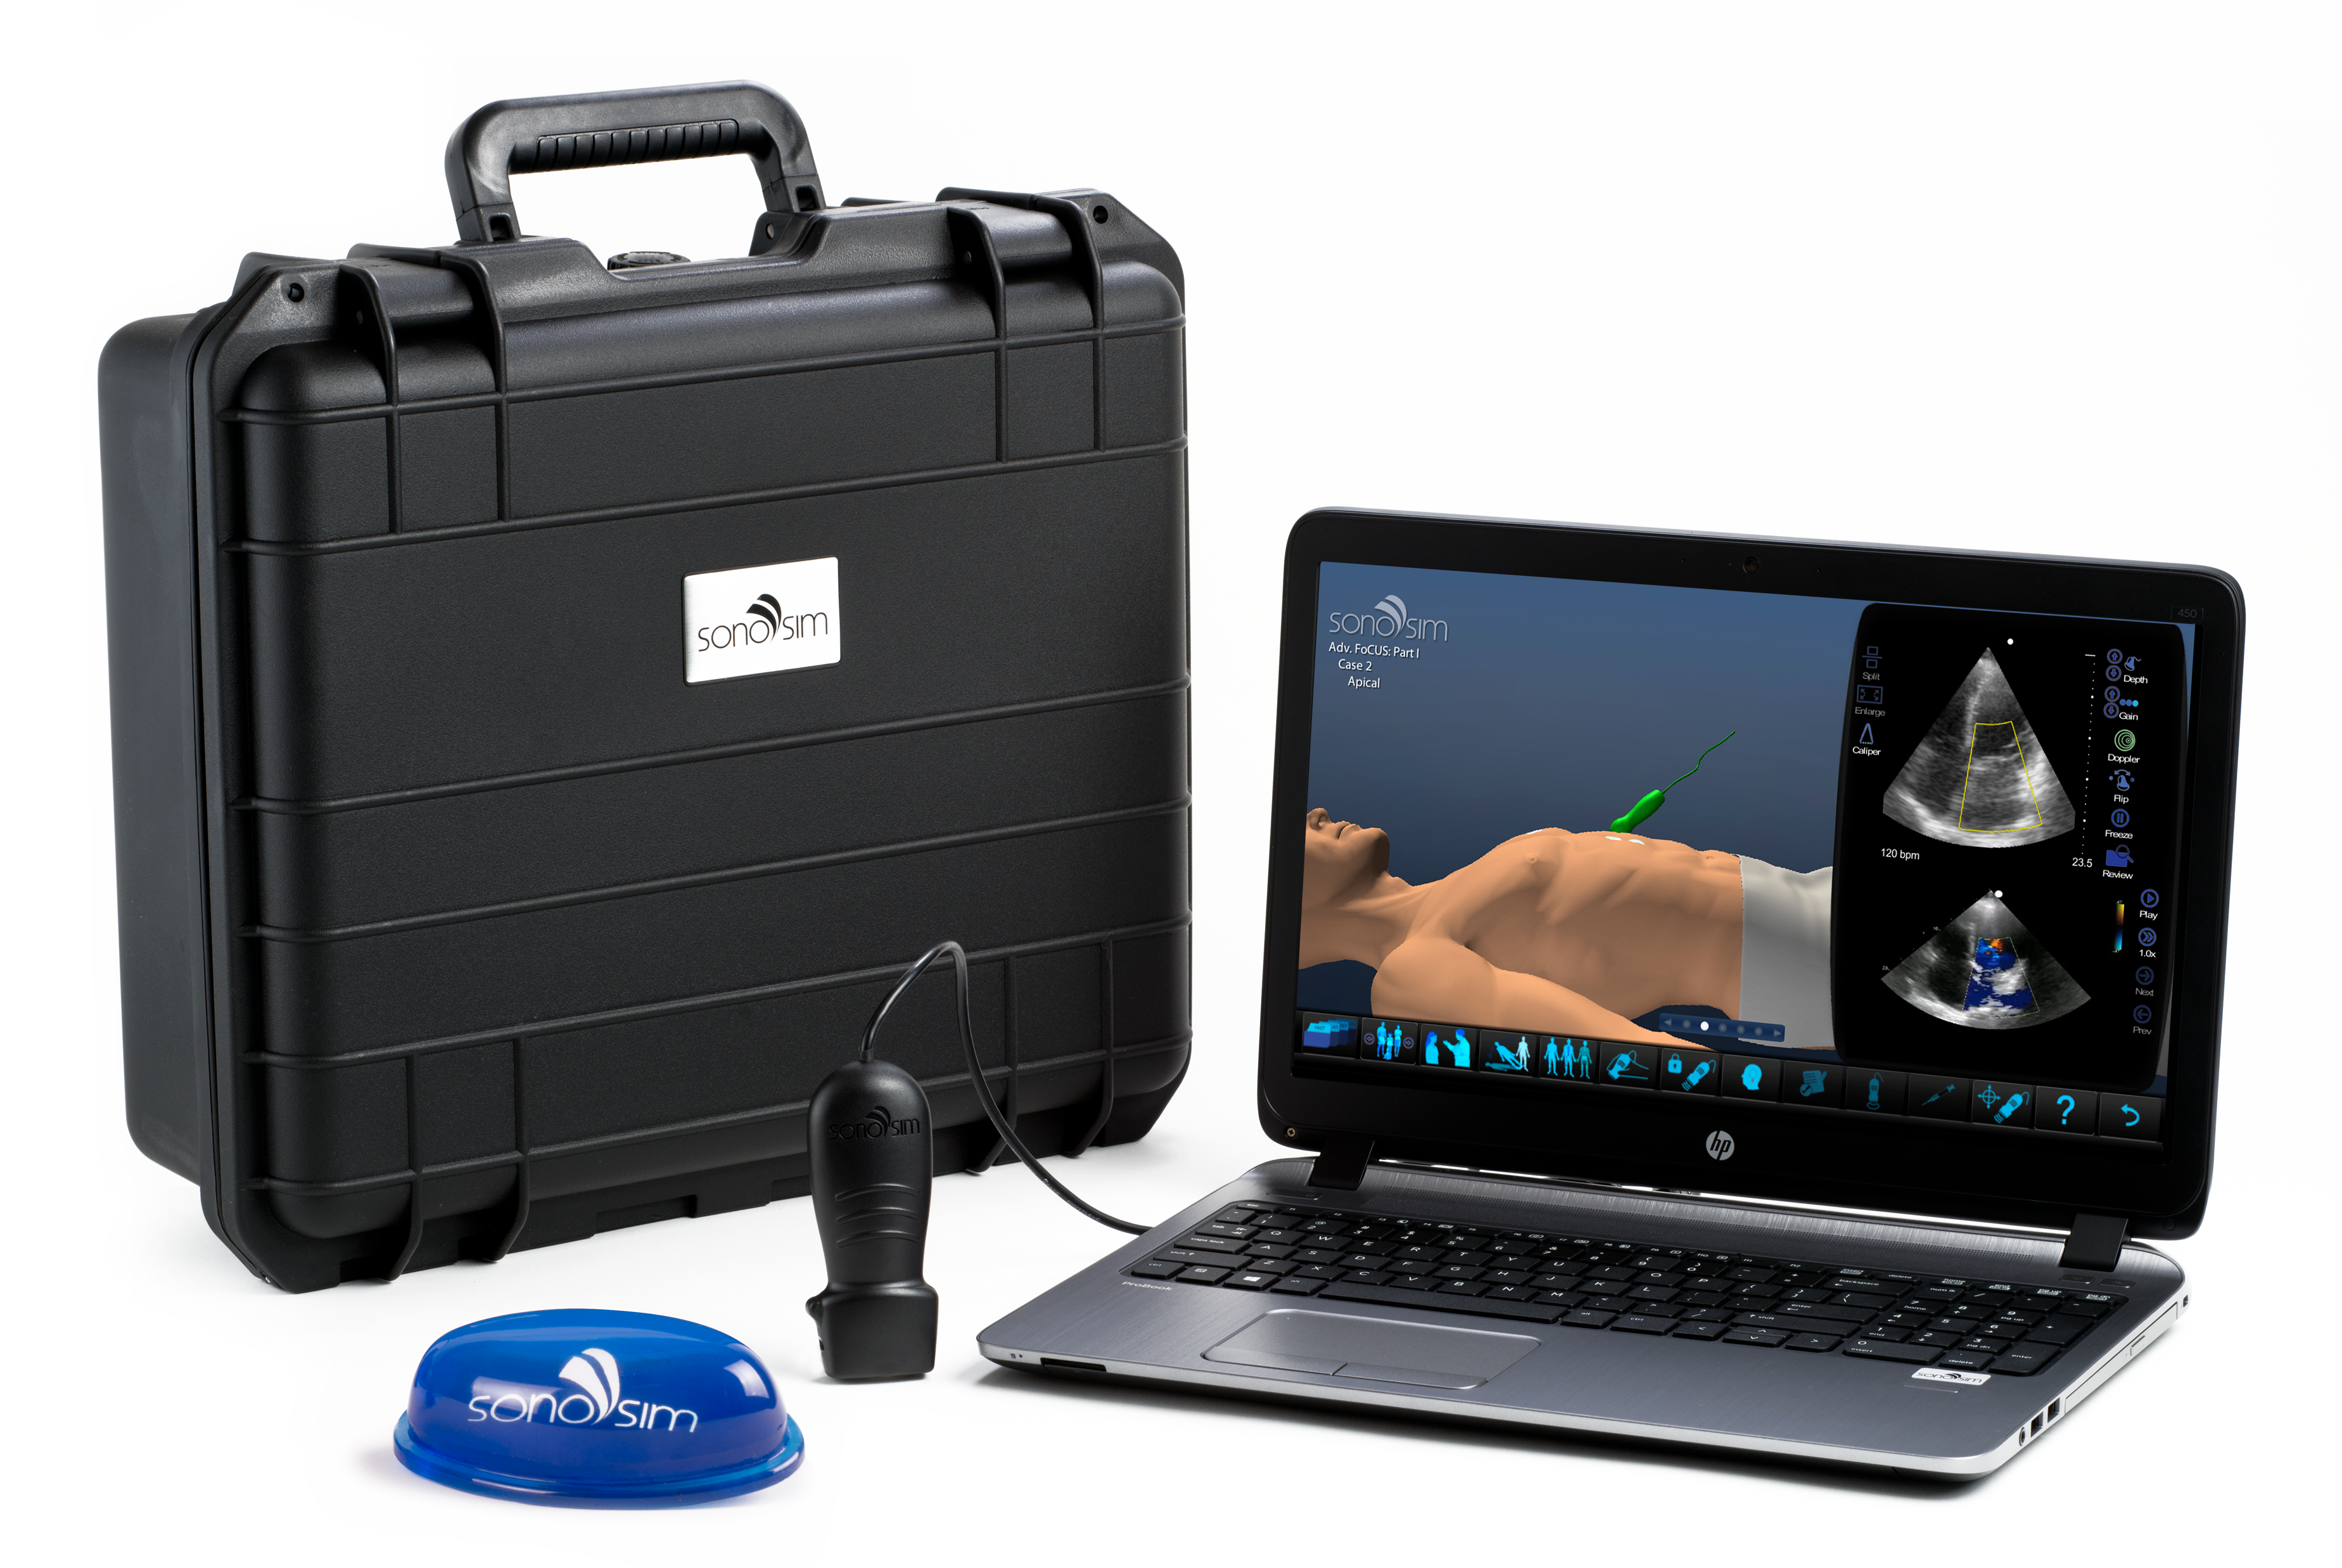 Personal Online Ultrasound training that allows physicians to train at home using personal computers